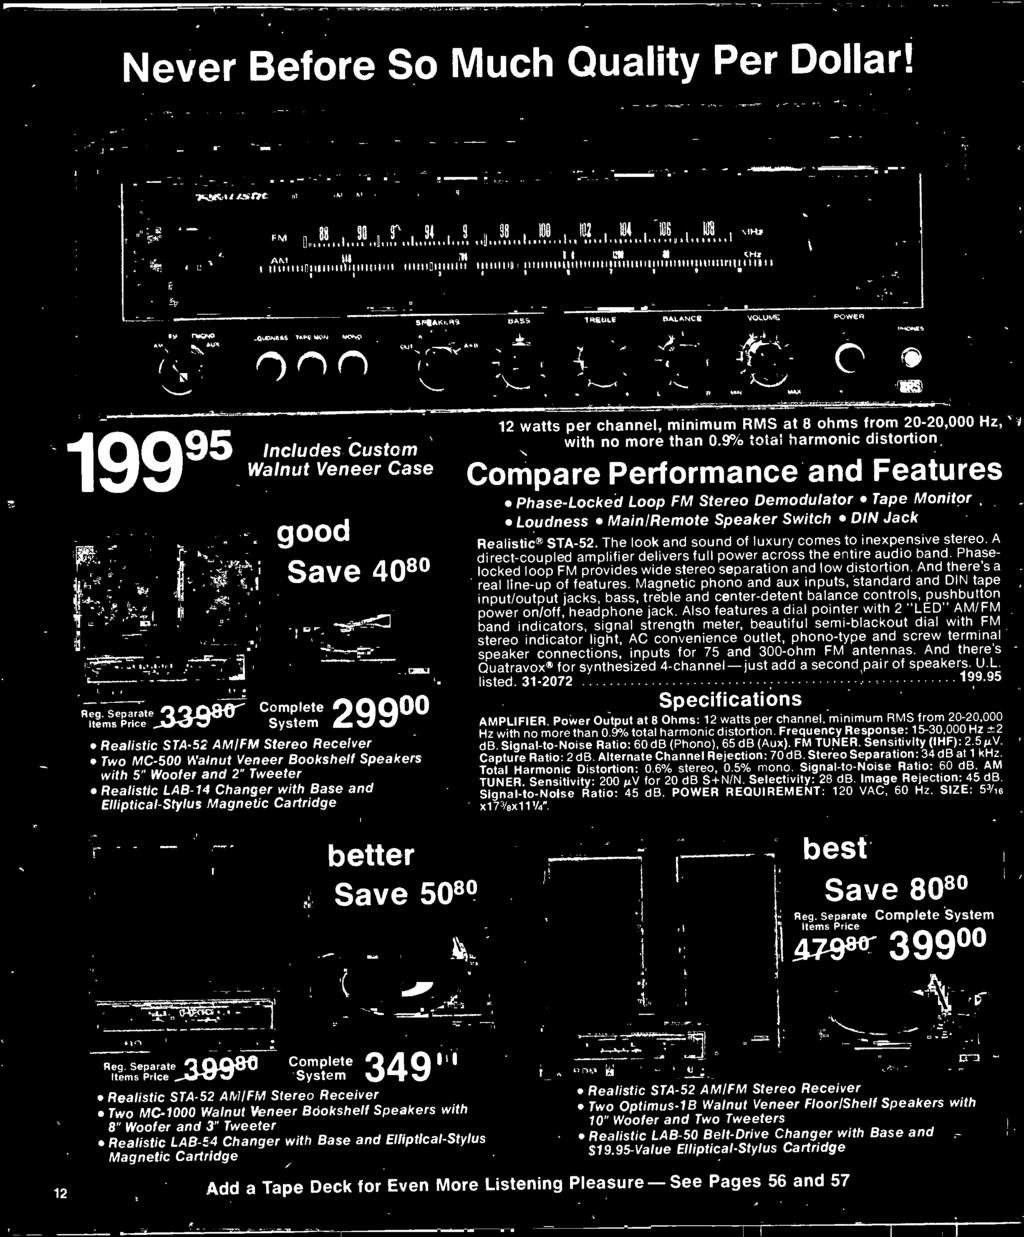 1977 Electronics Catalog Pdf Led Pattern Flasher Using 555 Timer 4017 Counter And 2n2222a 9 Total Harmonic Distortion Compare Performance Features Phase Locked Loop Fm Stereo Demodulator